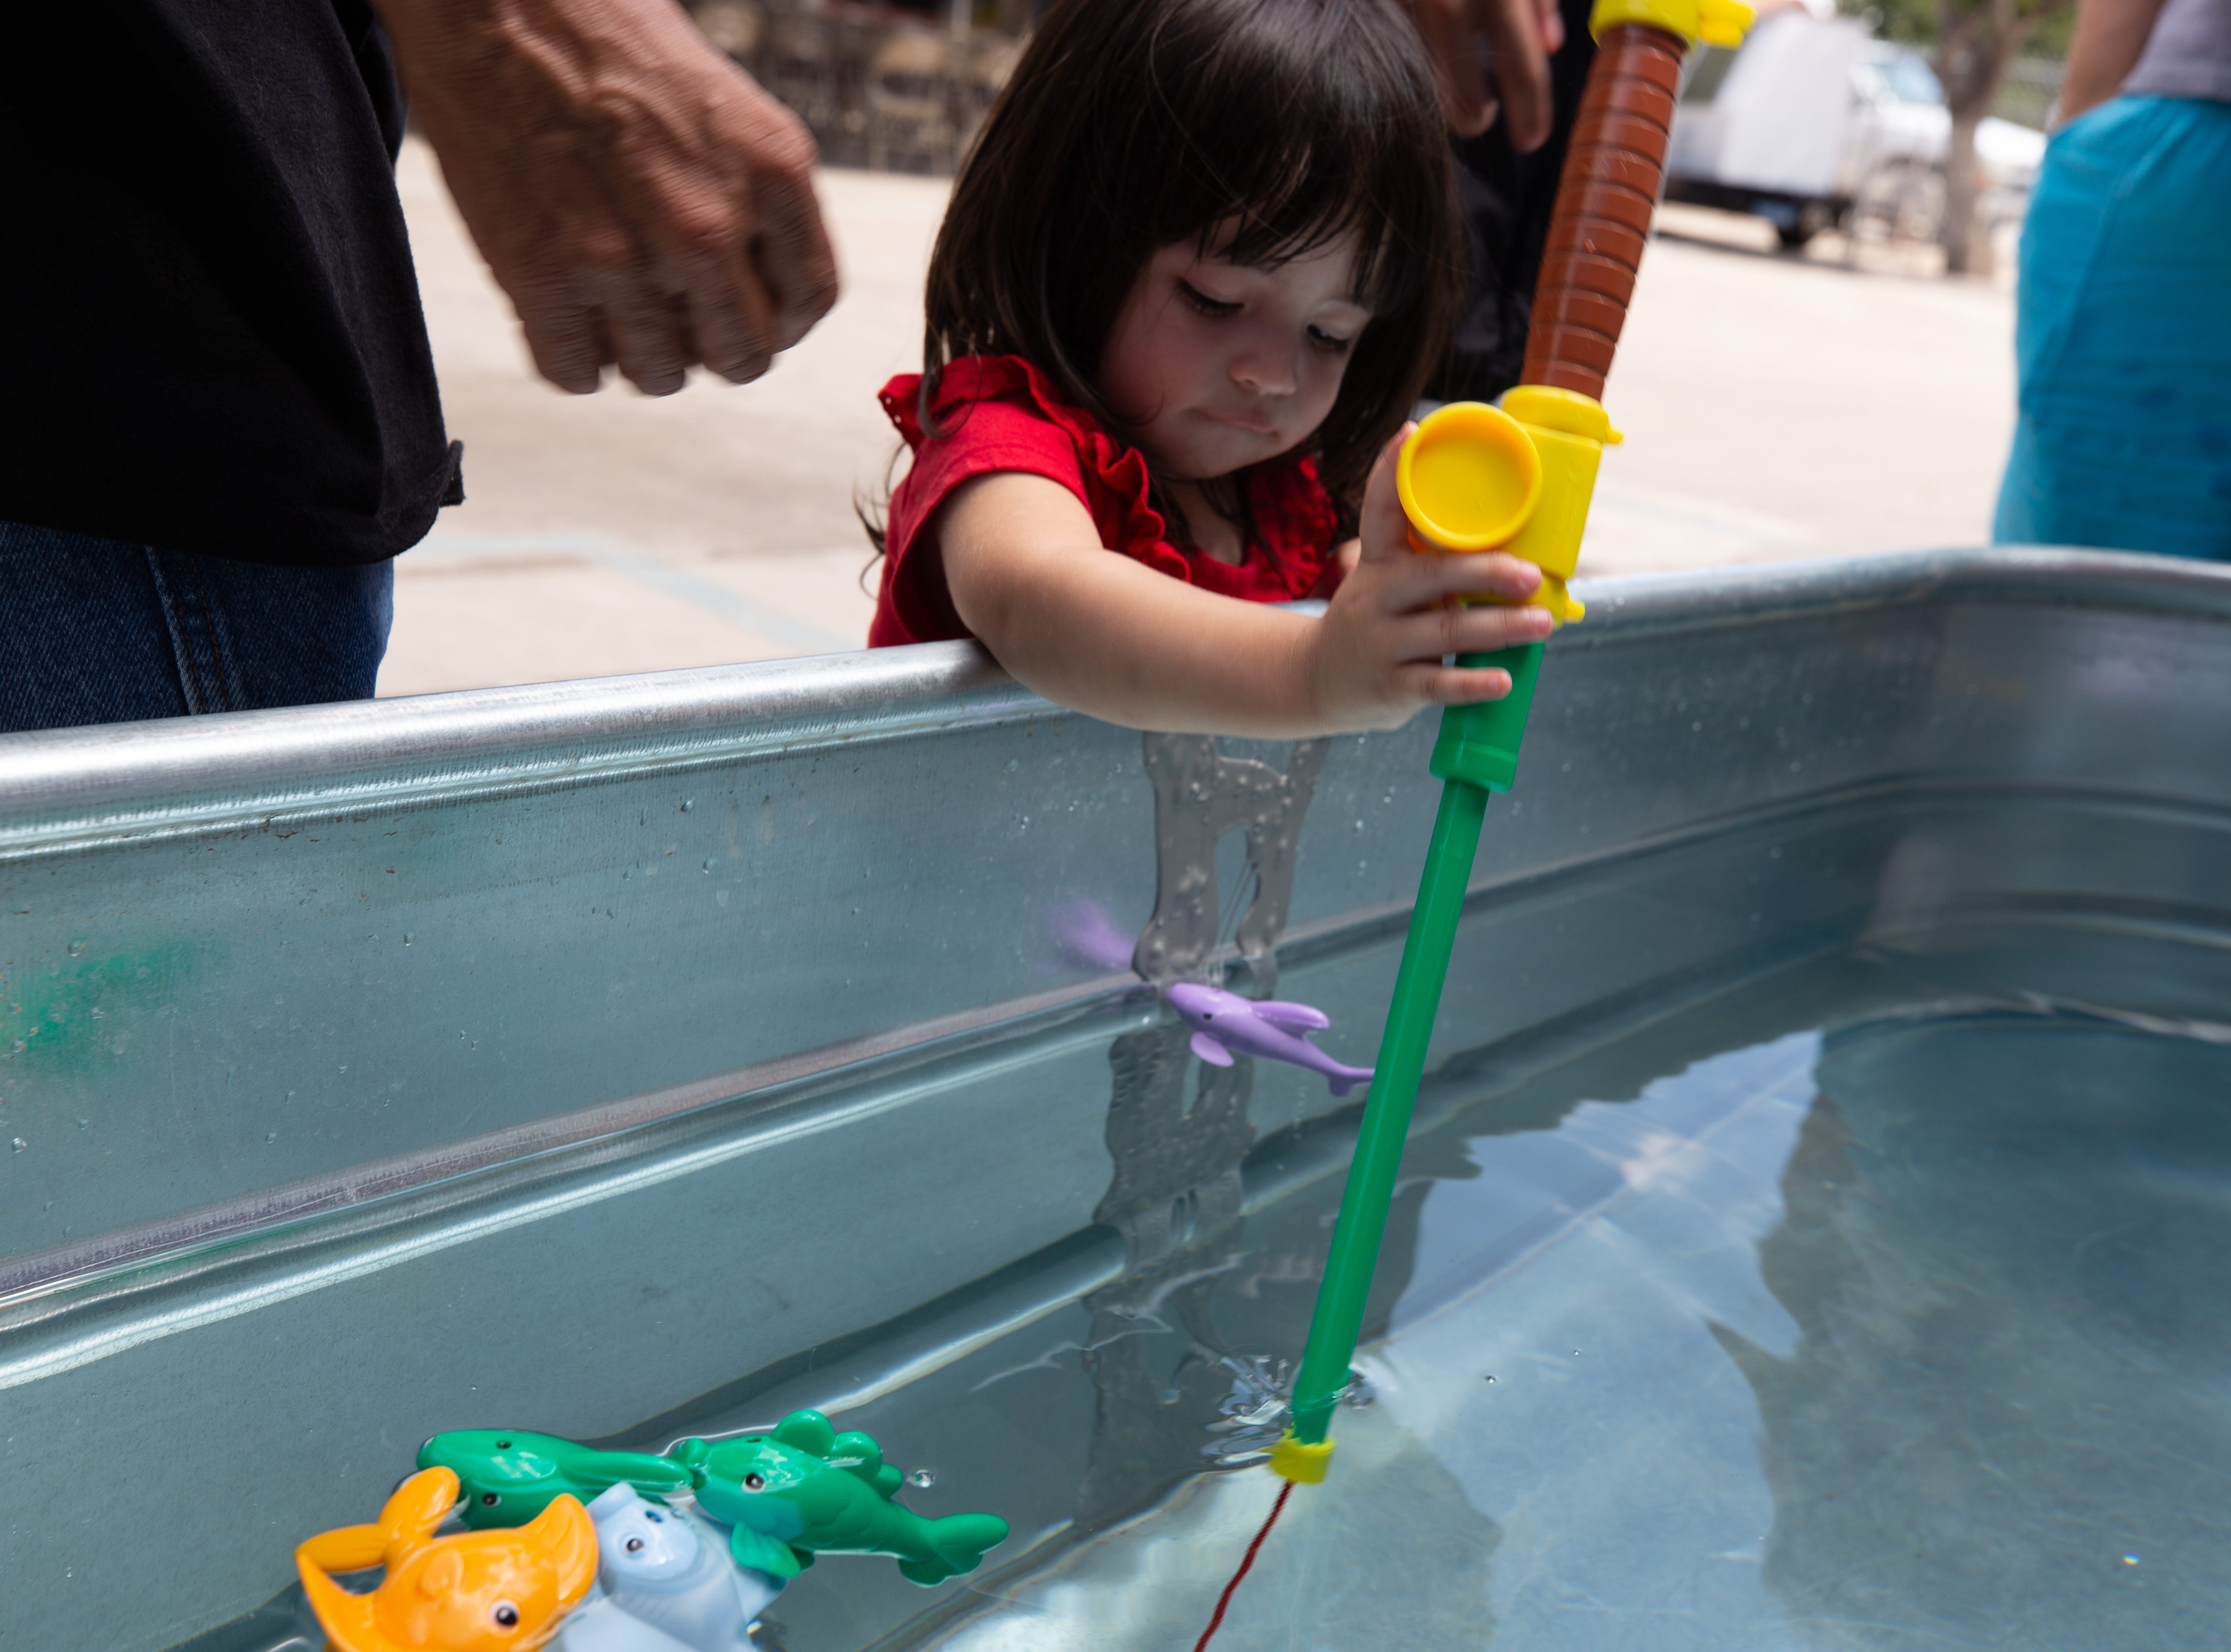 Josephine Gallardo, 2, tries an unconventional method of catching a plastic fish at the St. Genevieve Fiesta on Saturday, Sept. 8, 2018.